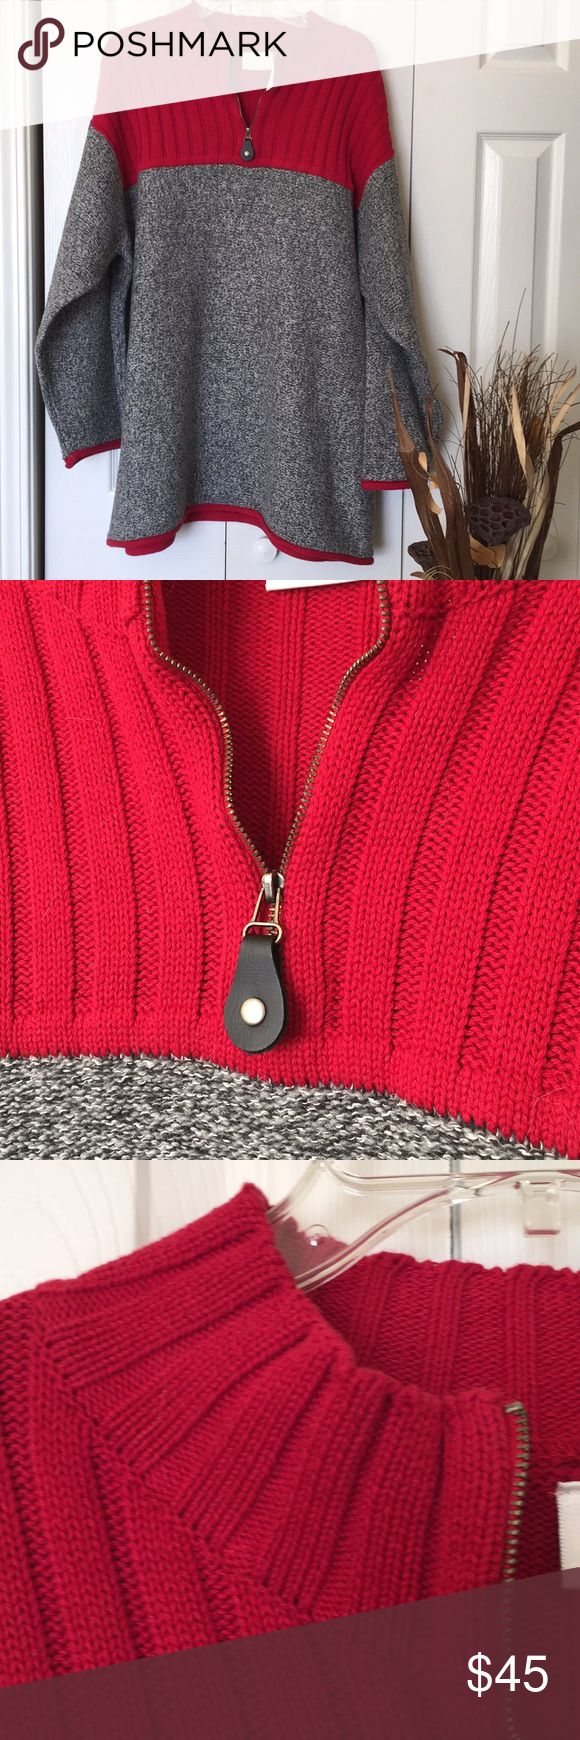 """NWT heavy sweater This is a pretty heavy piece. Heather gray bodice with red cable chest and top of back. Red trim on long sleeve ends and bottom hemline. Neckline zipper with accent zipper pull. Plenty of stretch. Pit to pit approx 27 1/2"""". Length approx 32"""" Liz Claiborne Sweaters Cowl & Turtlenecks"""